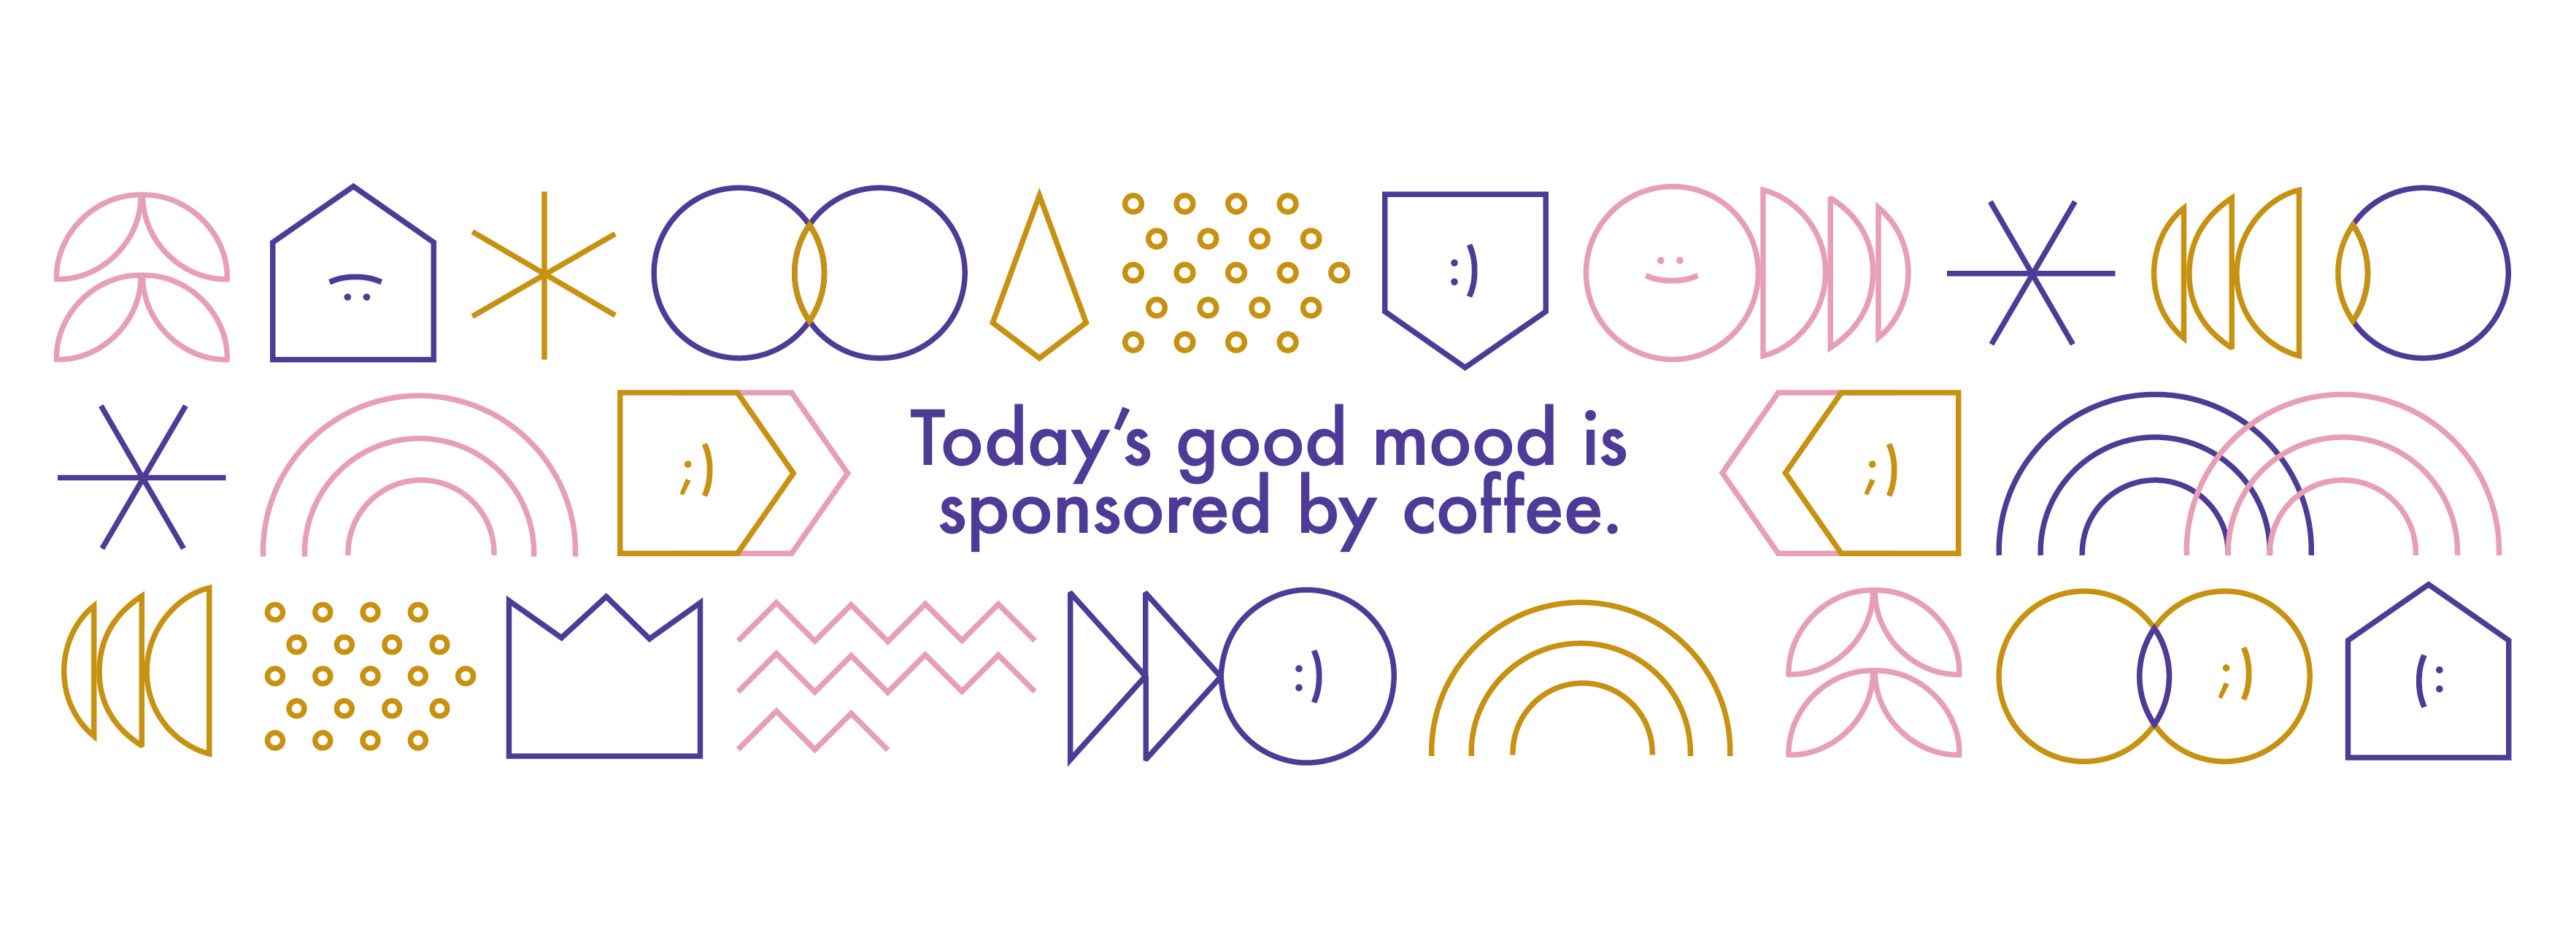 Large Scale graphics illustrating a fun quote: today's good mood is sponsored by coffee and a playful illustrative graphics on Sylvia Park Shopping Centre carpark wall